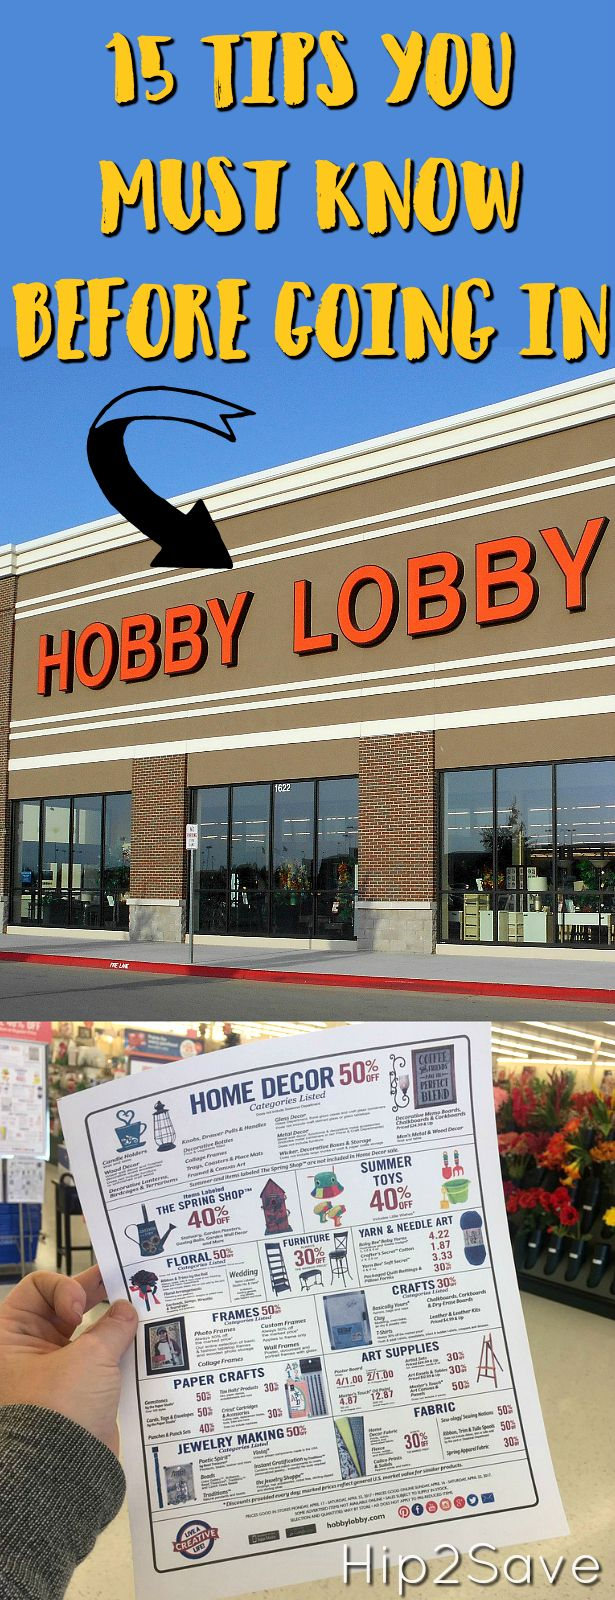 If you love shopping at Hobby Lobby and are looking for ways to get the most bang for your buck, be sure to check out these money-saving secrets!